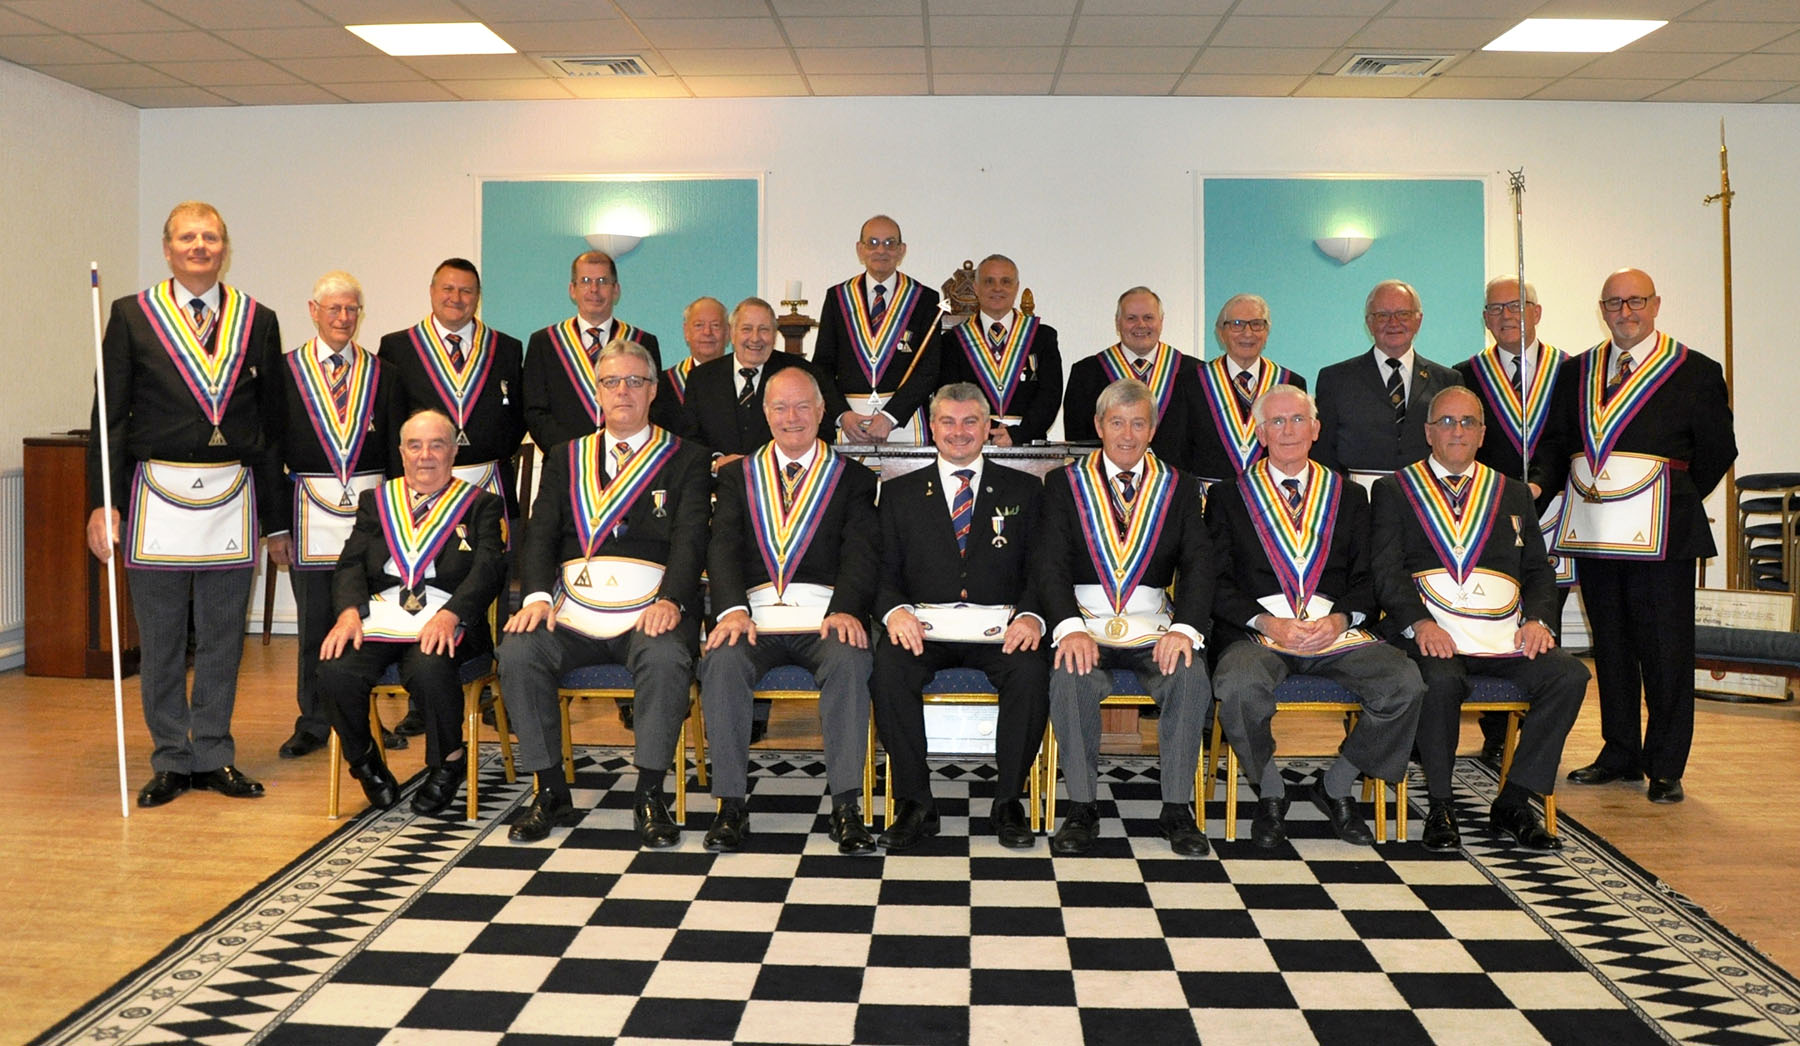 An Executive visit to Woodgrange Lodge